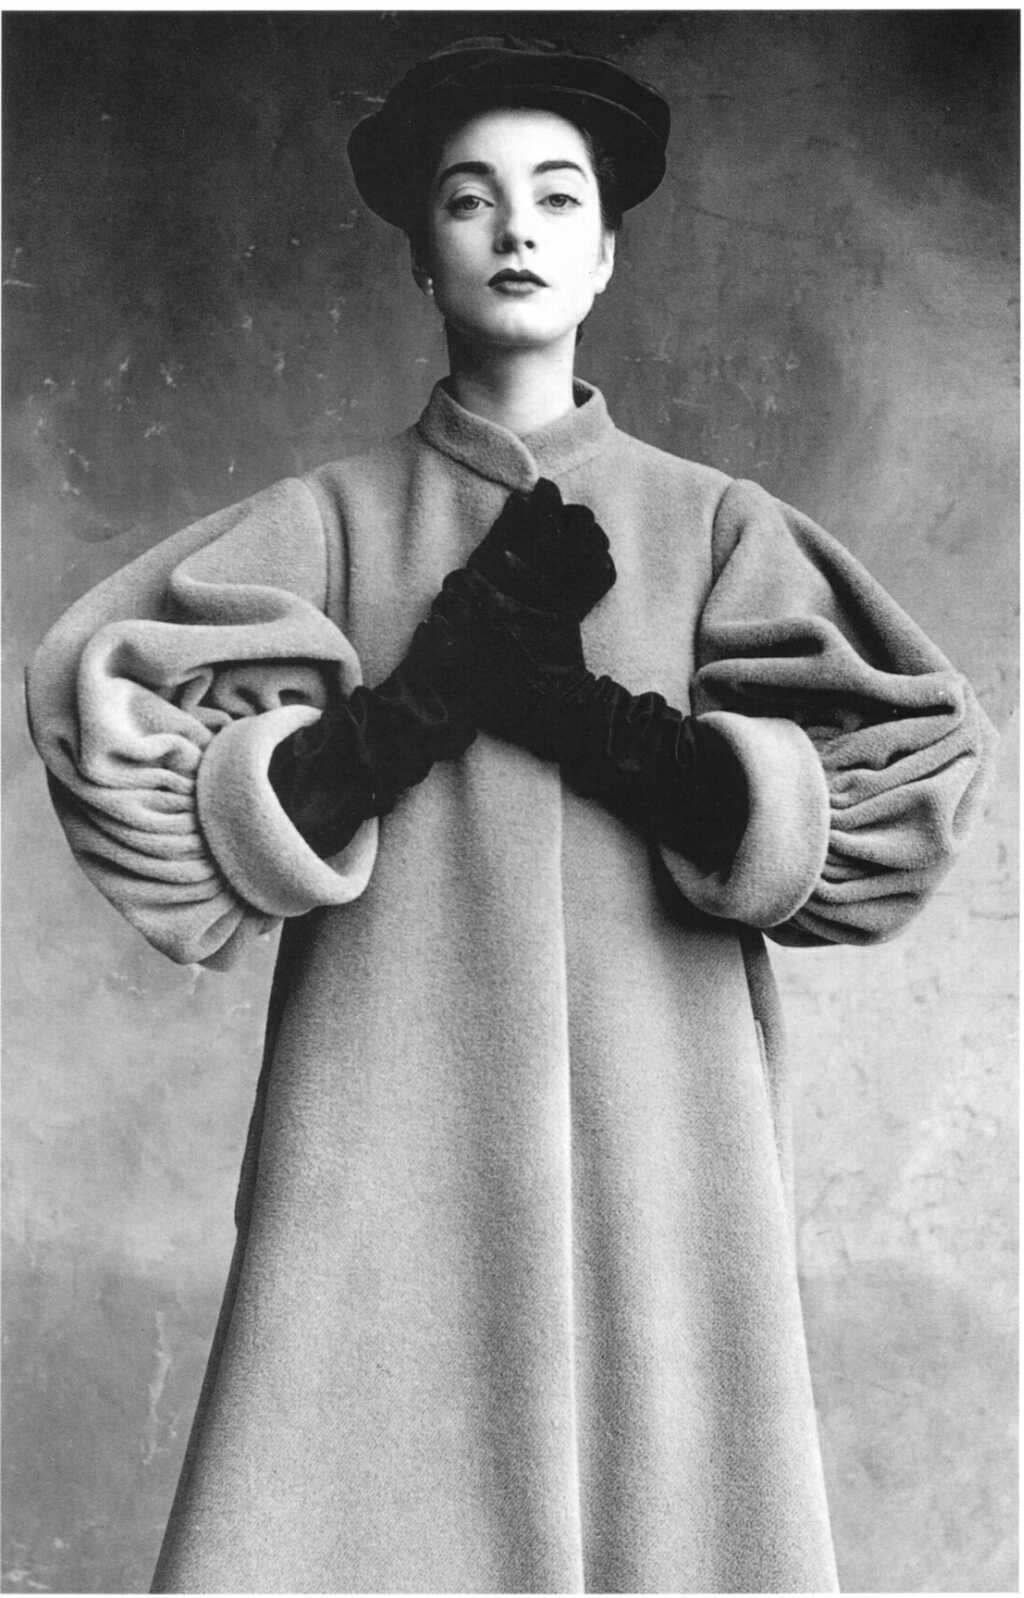 Cristobal Balenciaga | FROM THE BYGONE